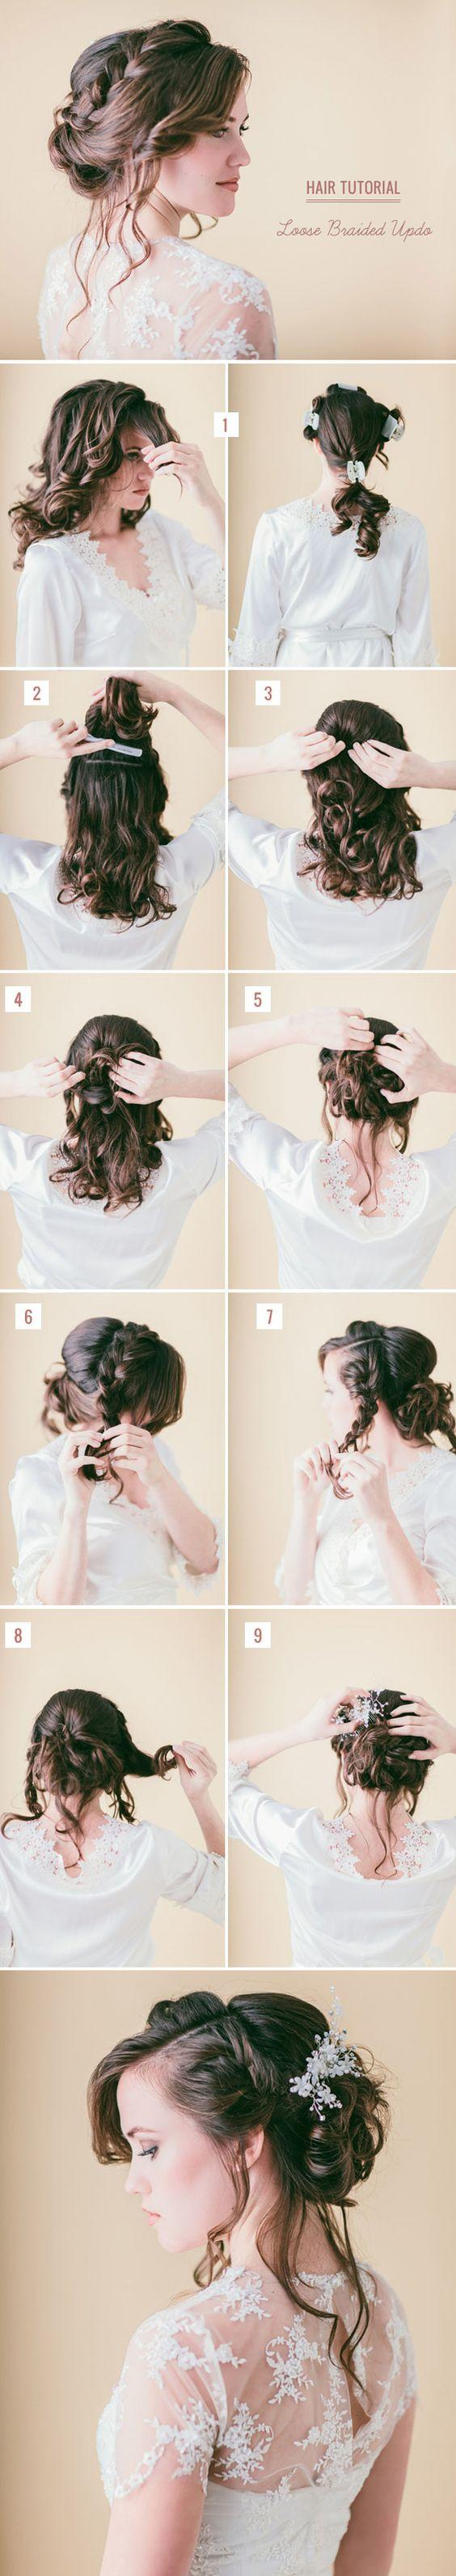 loose braided updo diy wedding hairstyle ideas